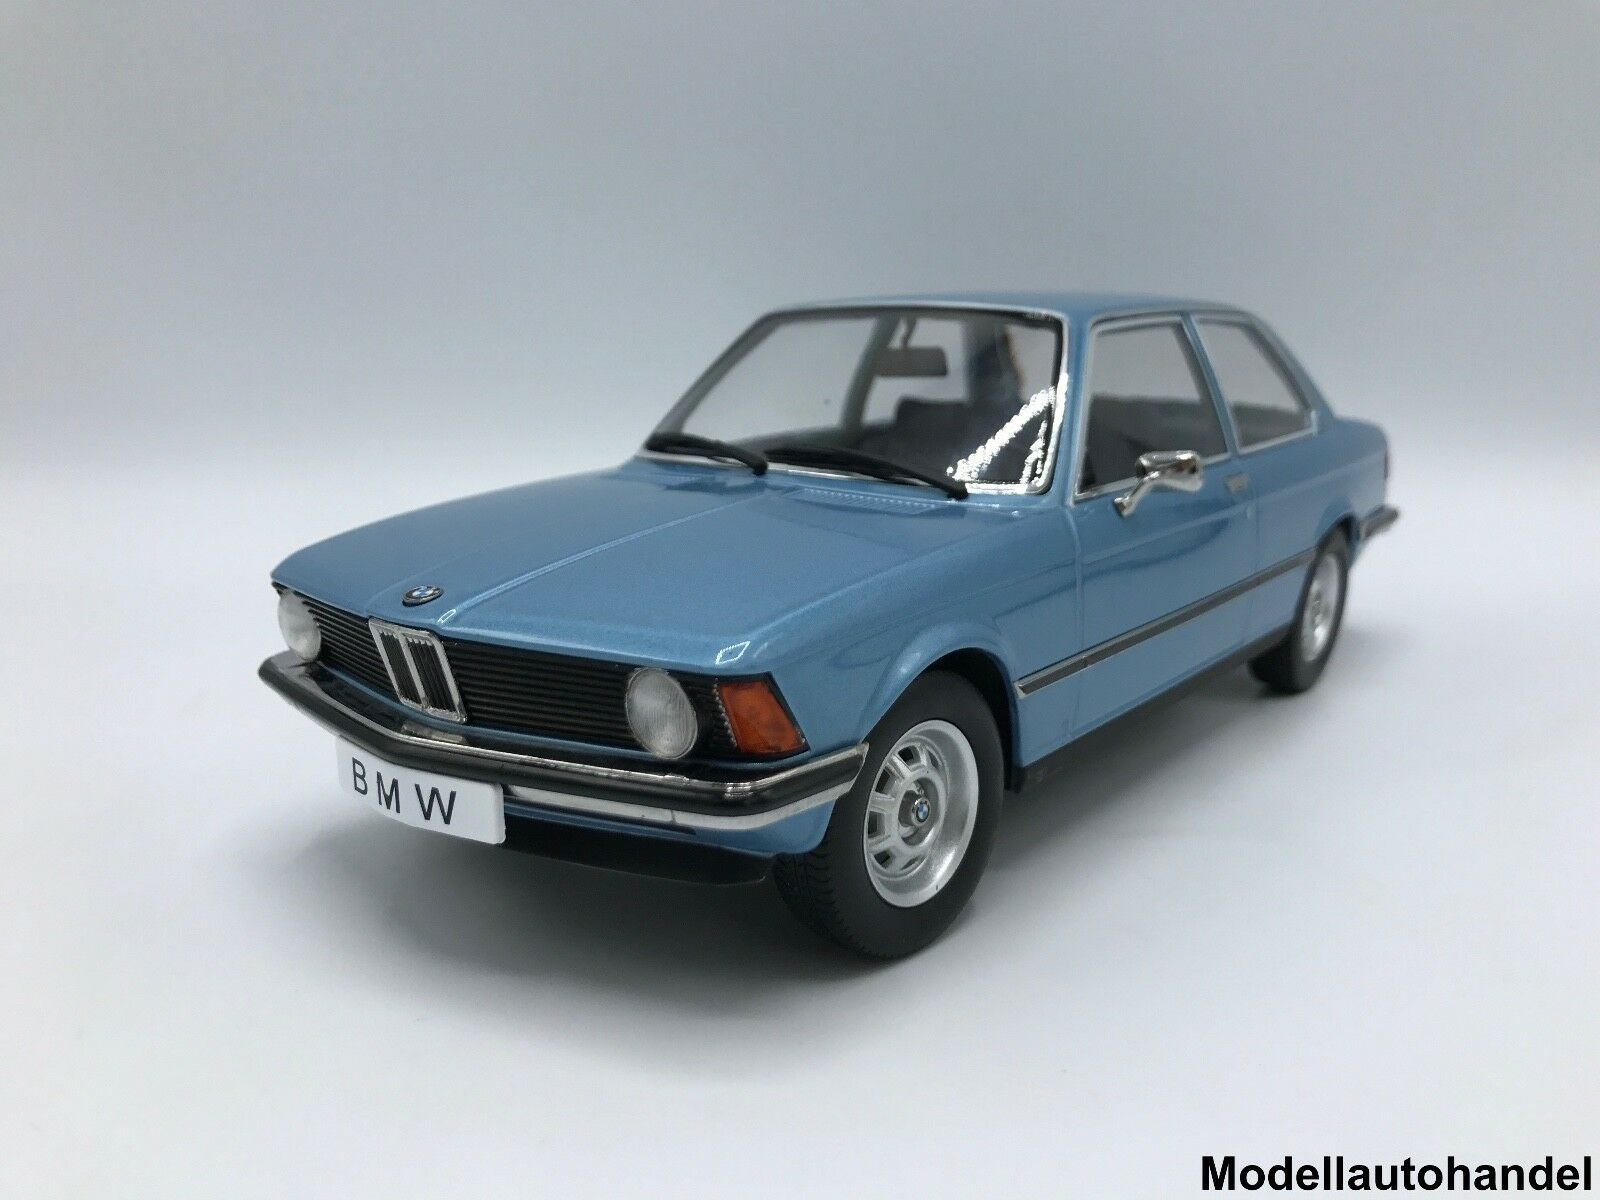 bmw 318i e21 3er 1975 metallic hellblau 1 18 kk scale eur 69 90 picclick de. Black Bedroom Furniture Sets. Home Design Ideas